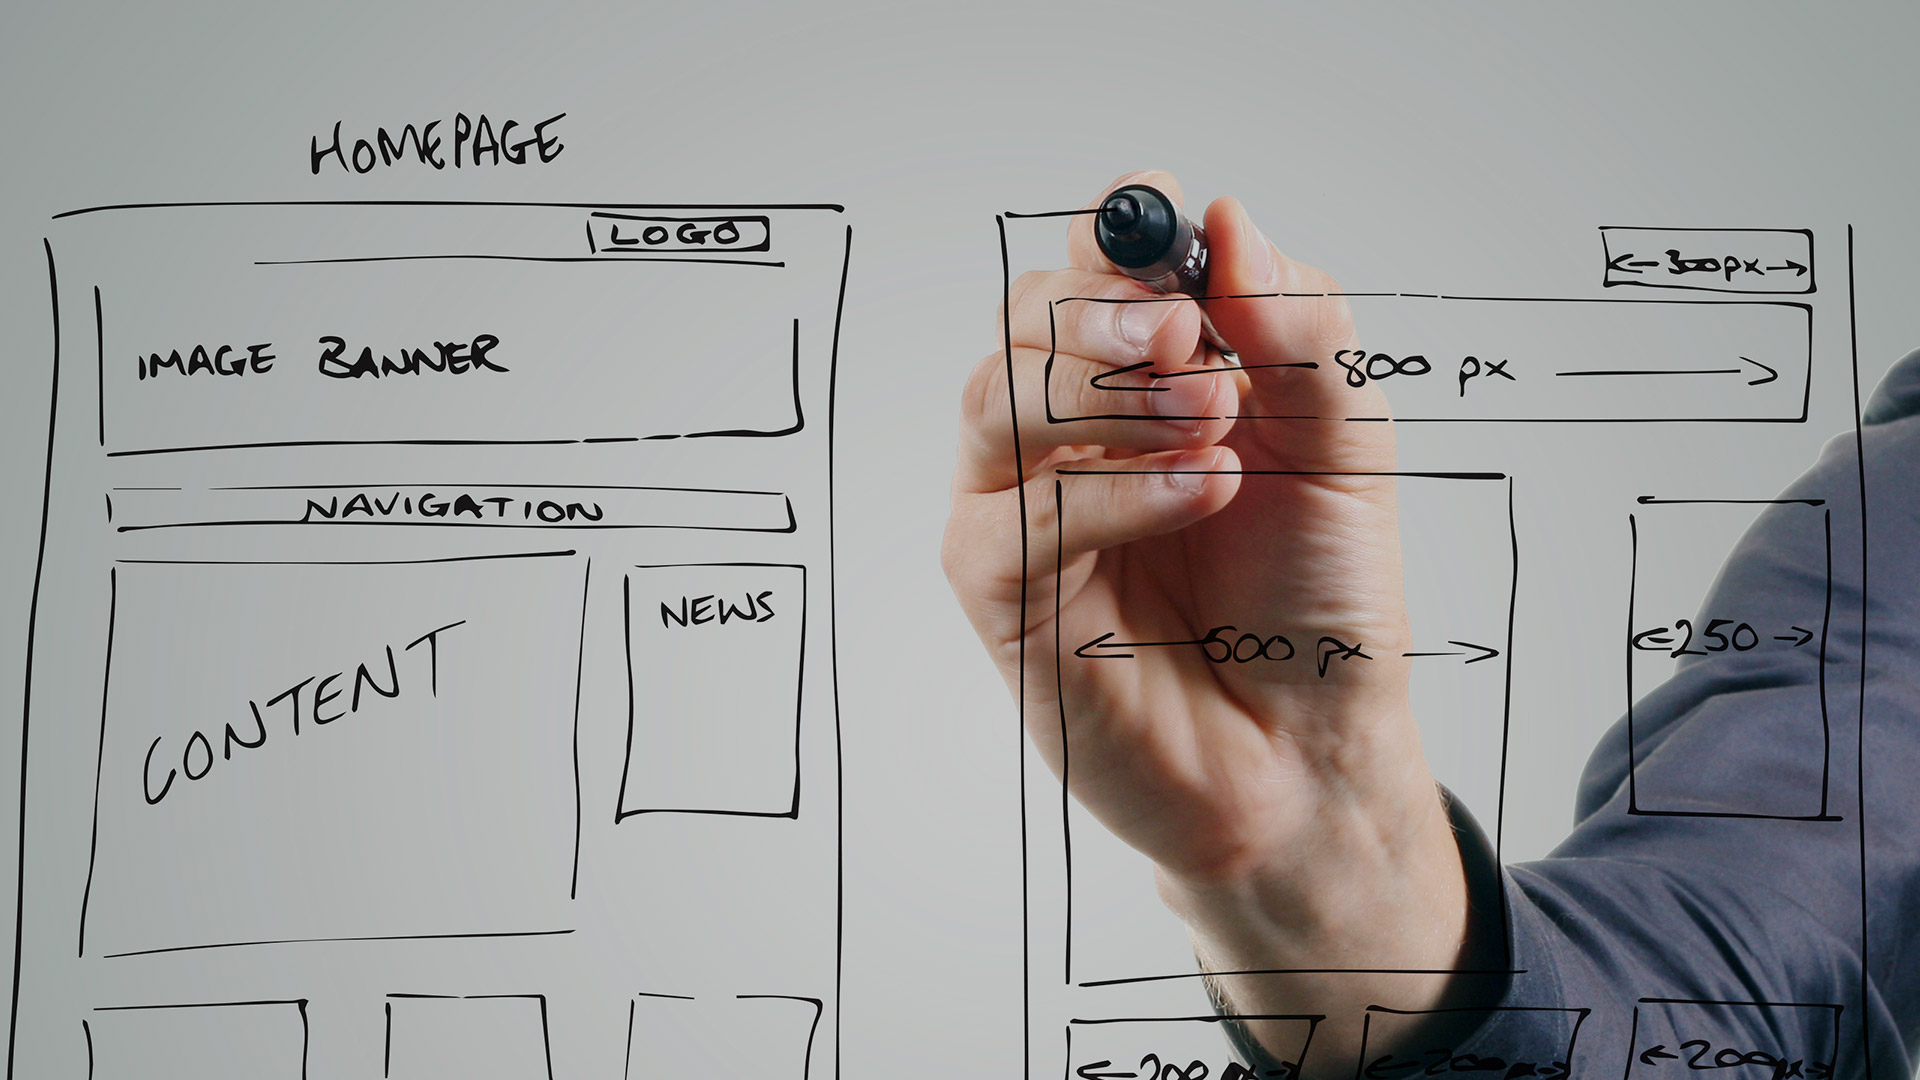 Don't be afraid to whiteboard early. There are creative ways you can use later to get those ideas in your wireframe tool.